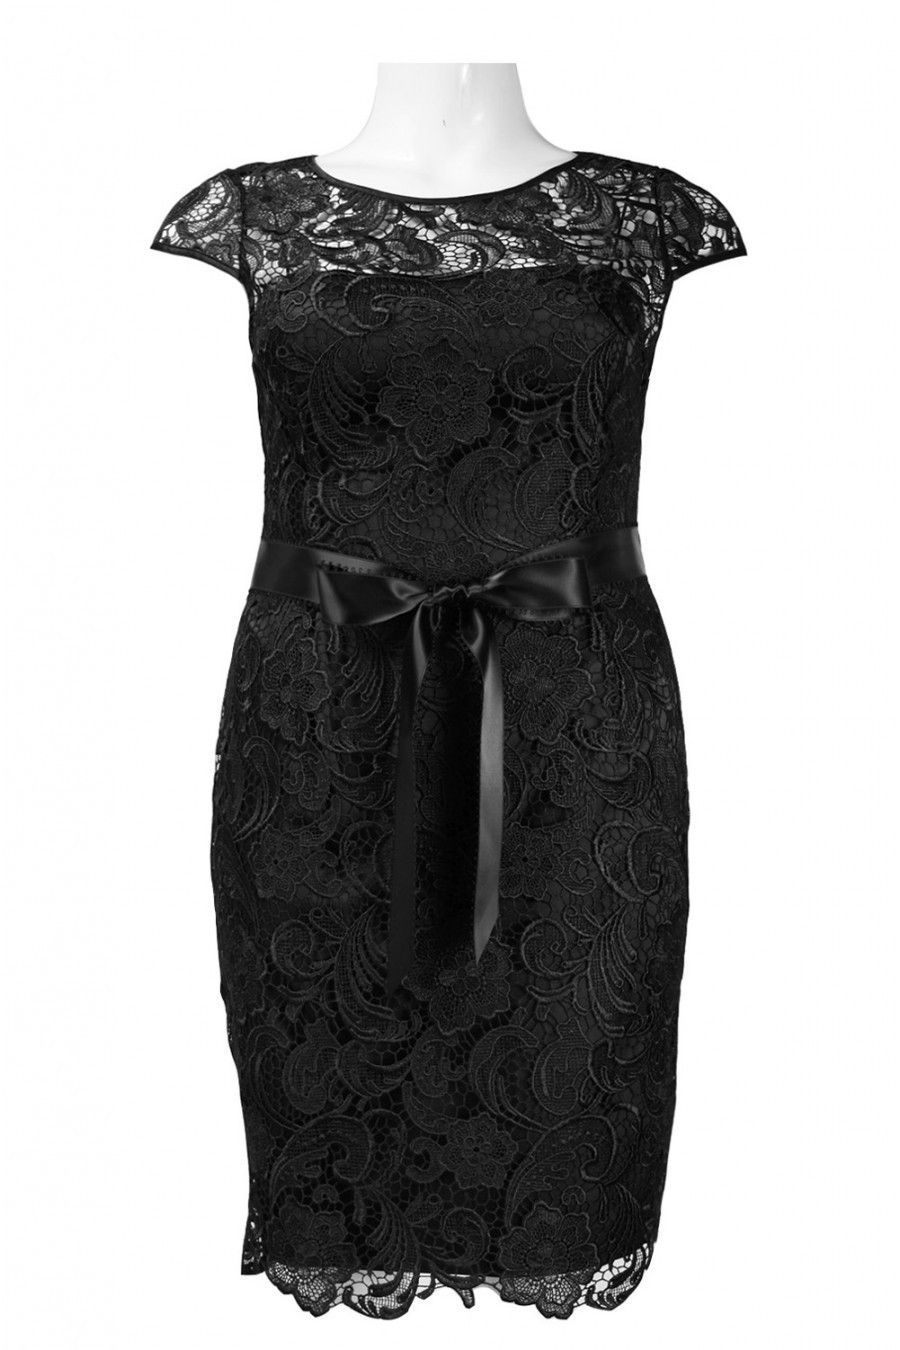 Adrianna papell cap sleeve knee length floral lace dress with bow